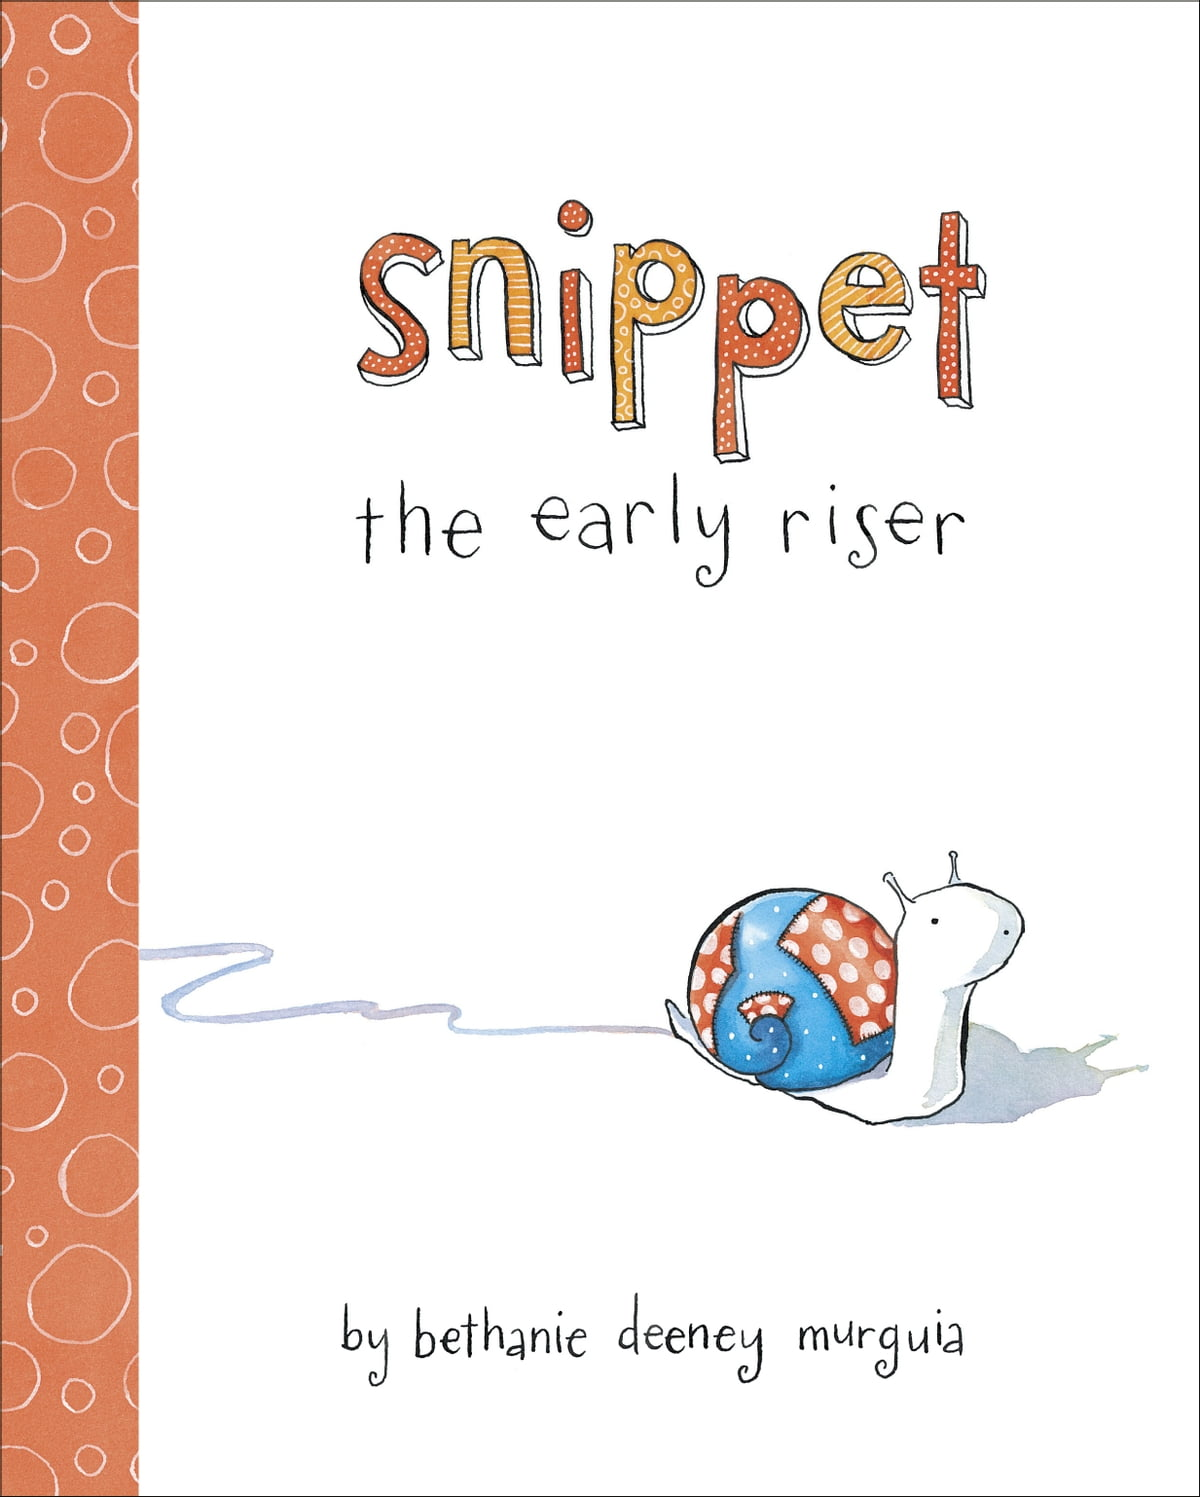 Early Riser >> Snippet The Early Riser Ebook By Bethanie Murguia 9780307981691